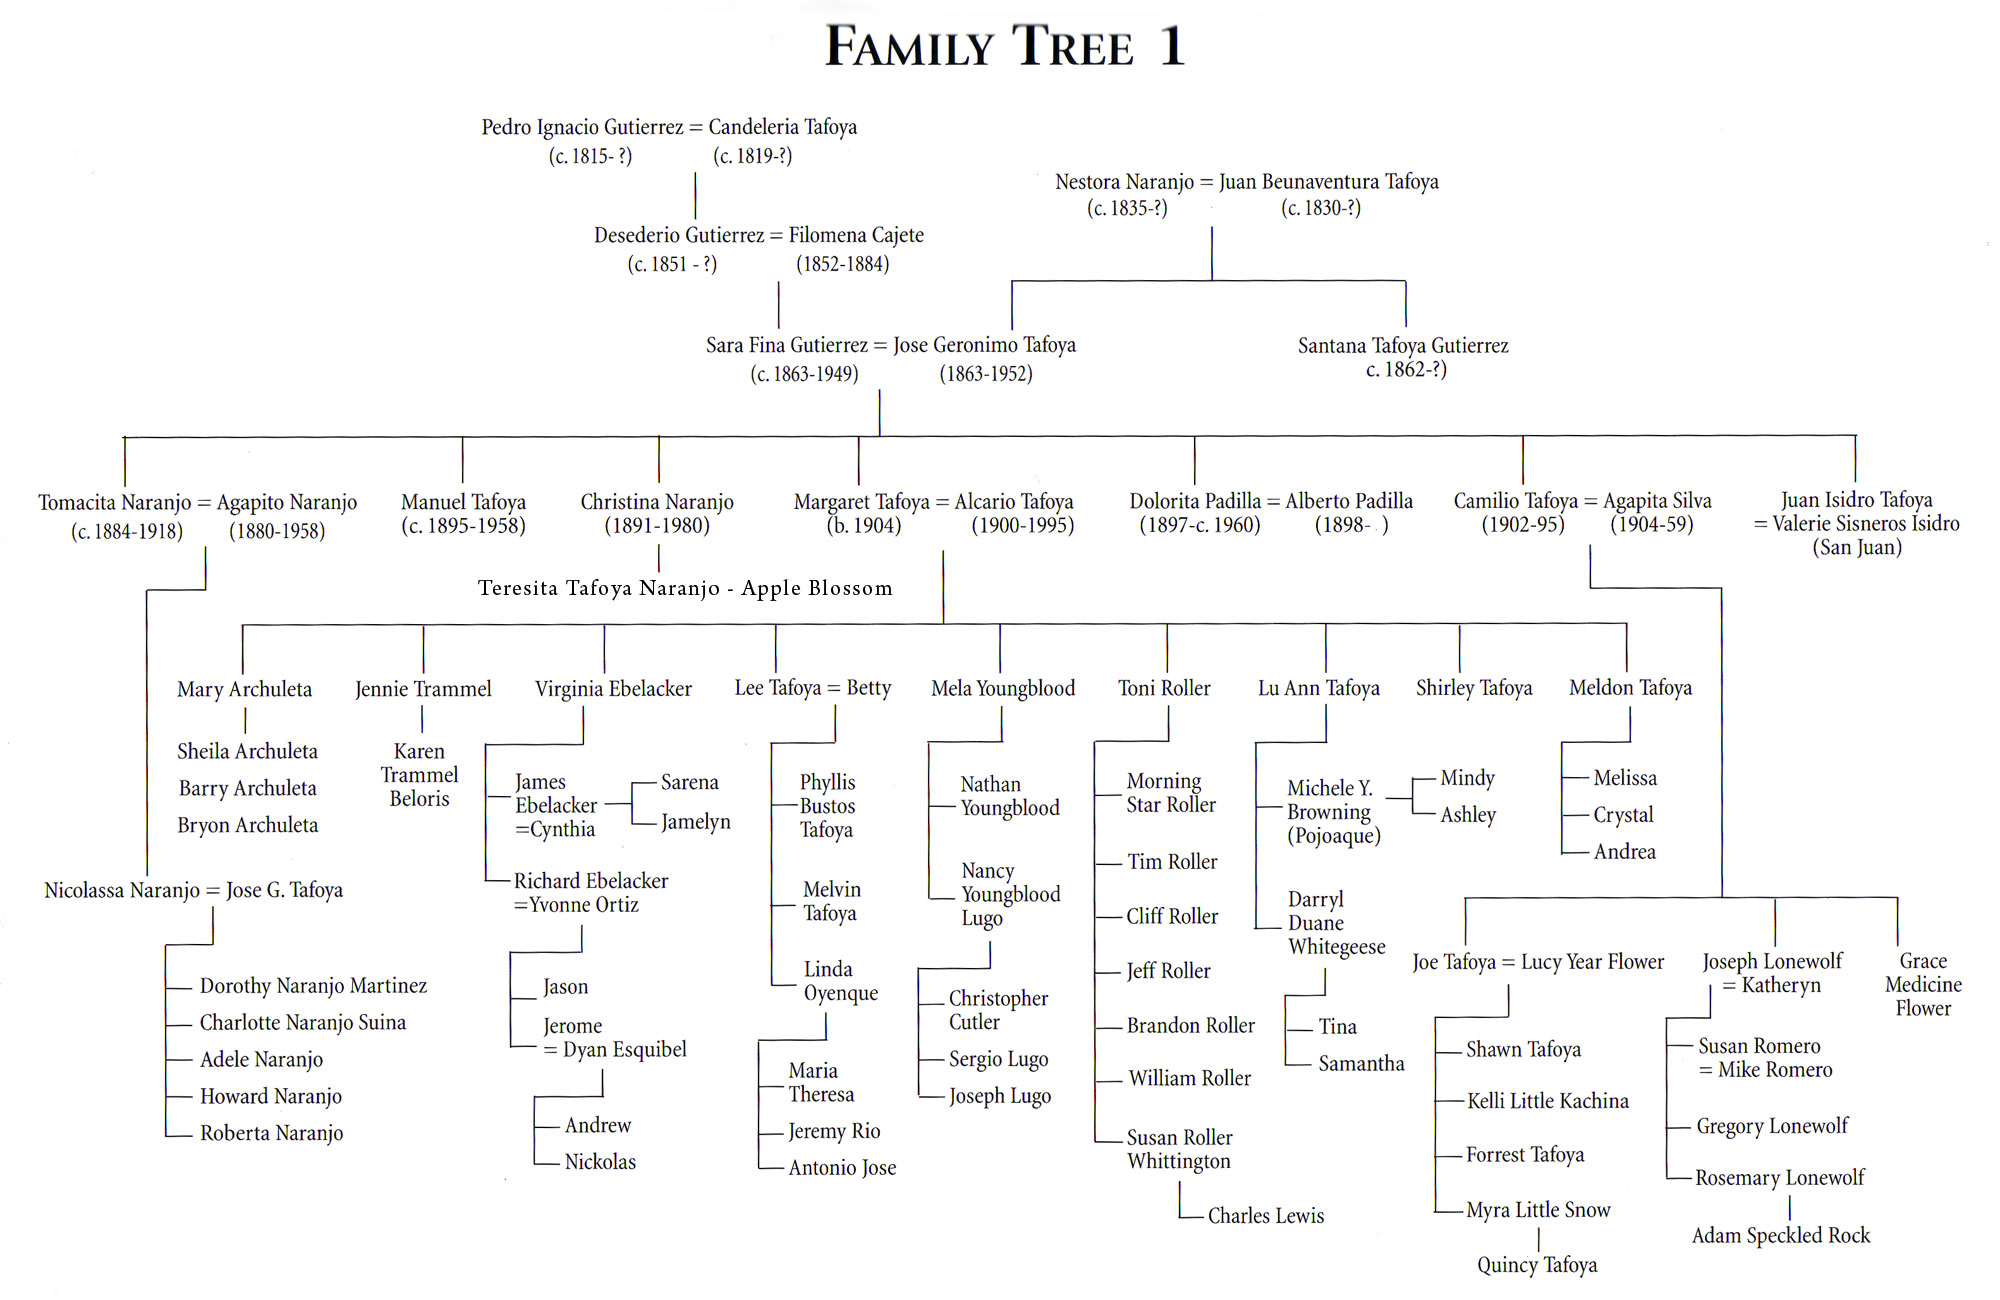 family tree source pueblo indian pottery 750 artist biographies by